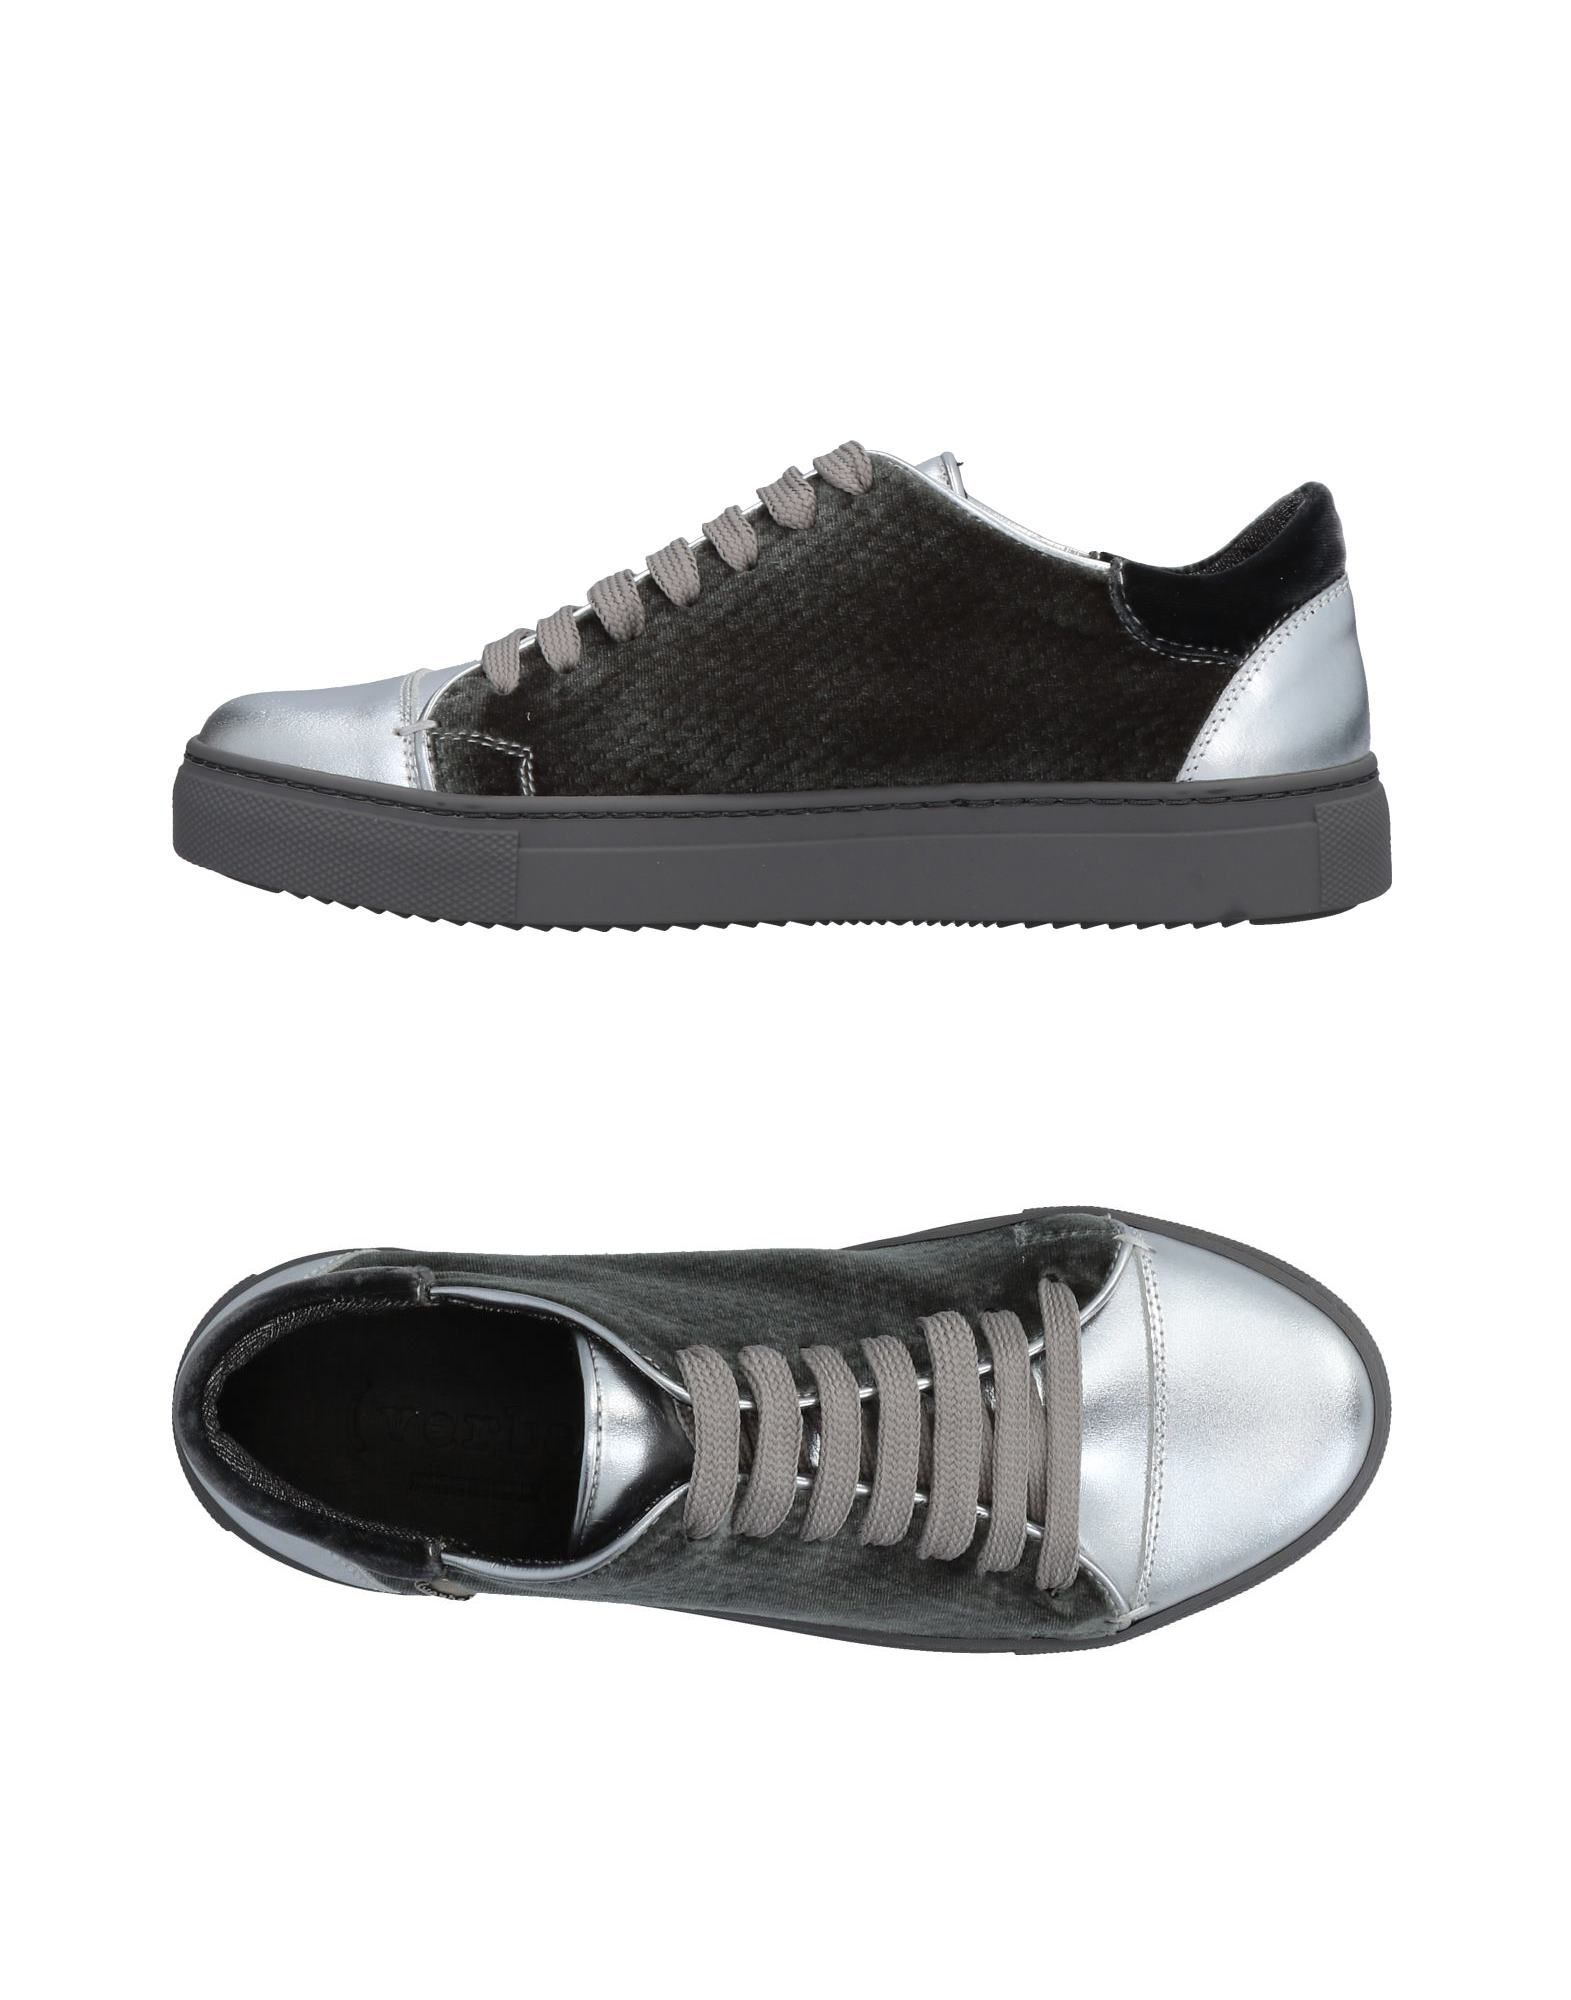 Baskets ( Verba ) Femme - Baskets ( Verba ) Argent Chaussures casual sauvages